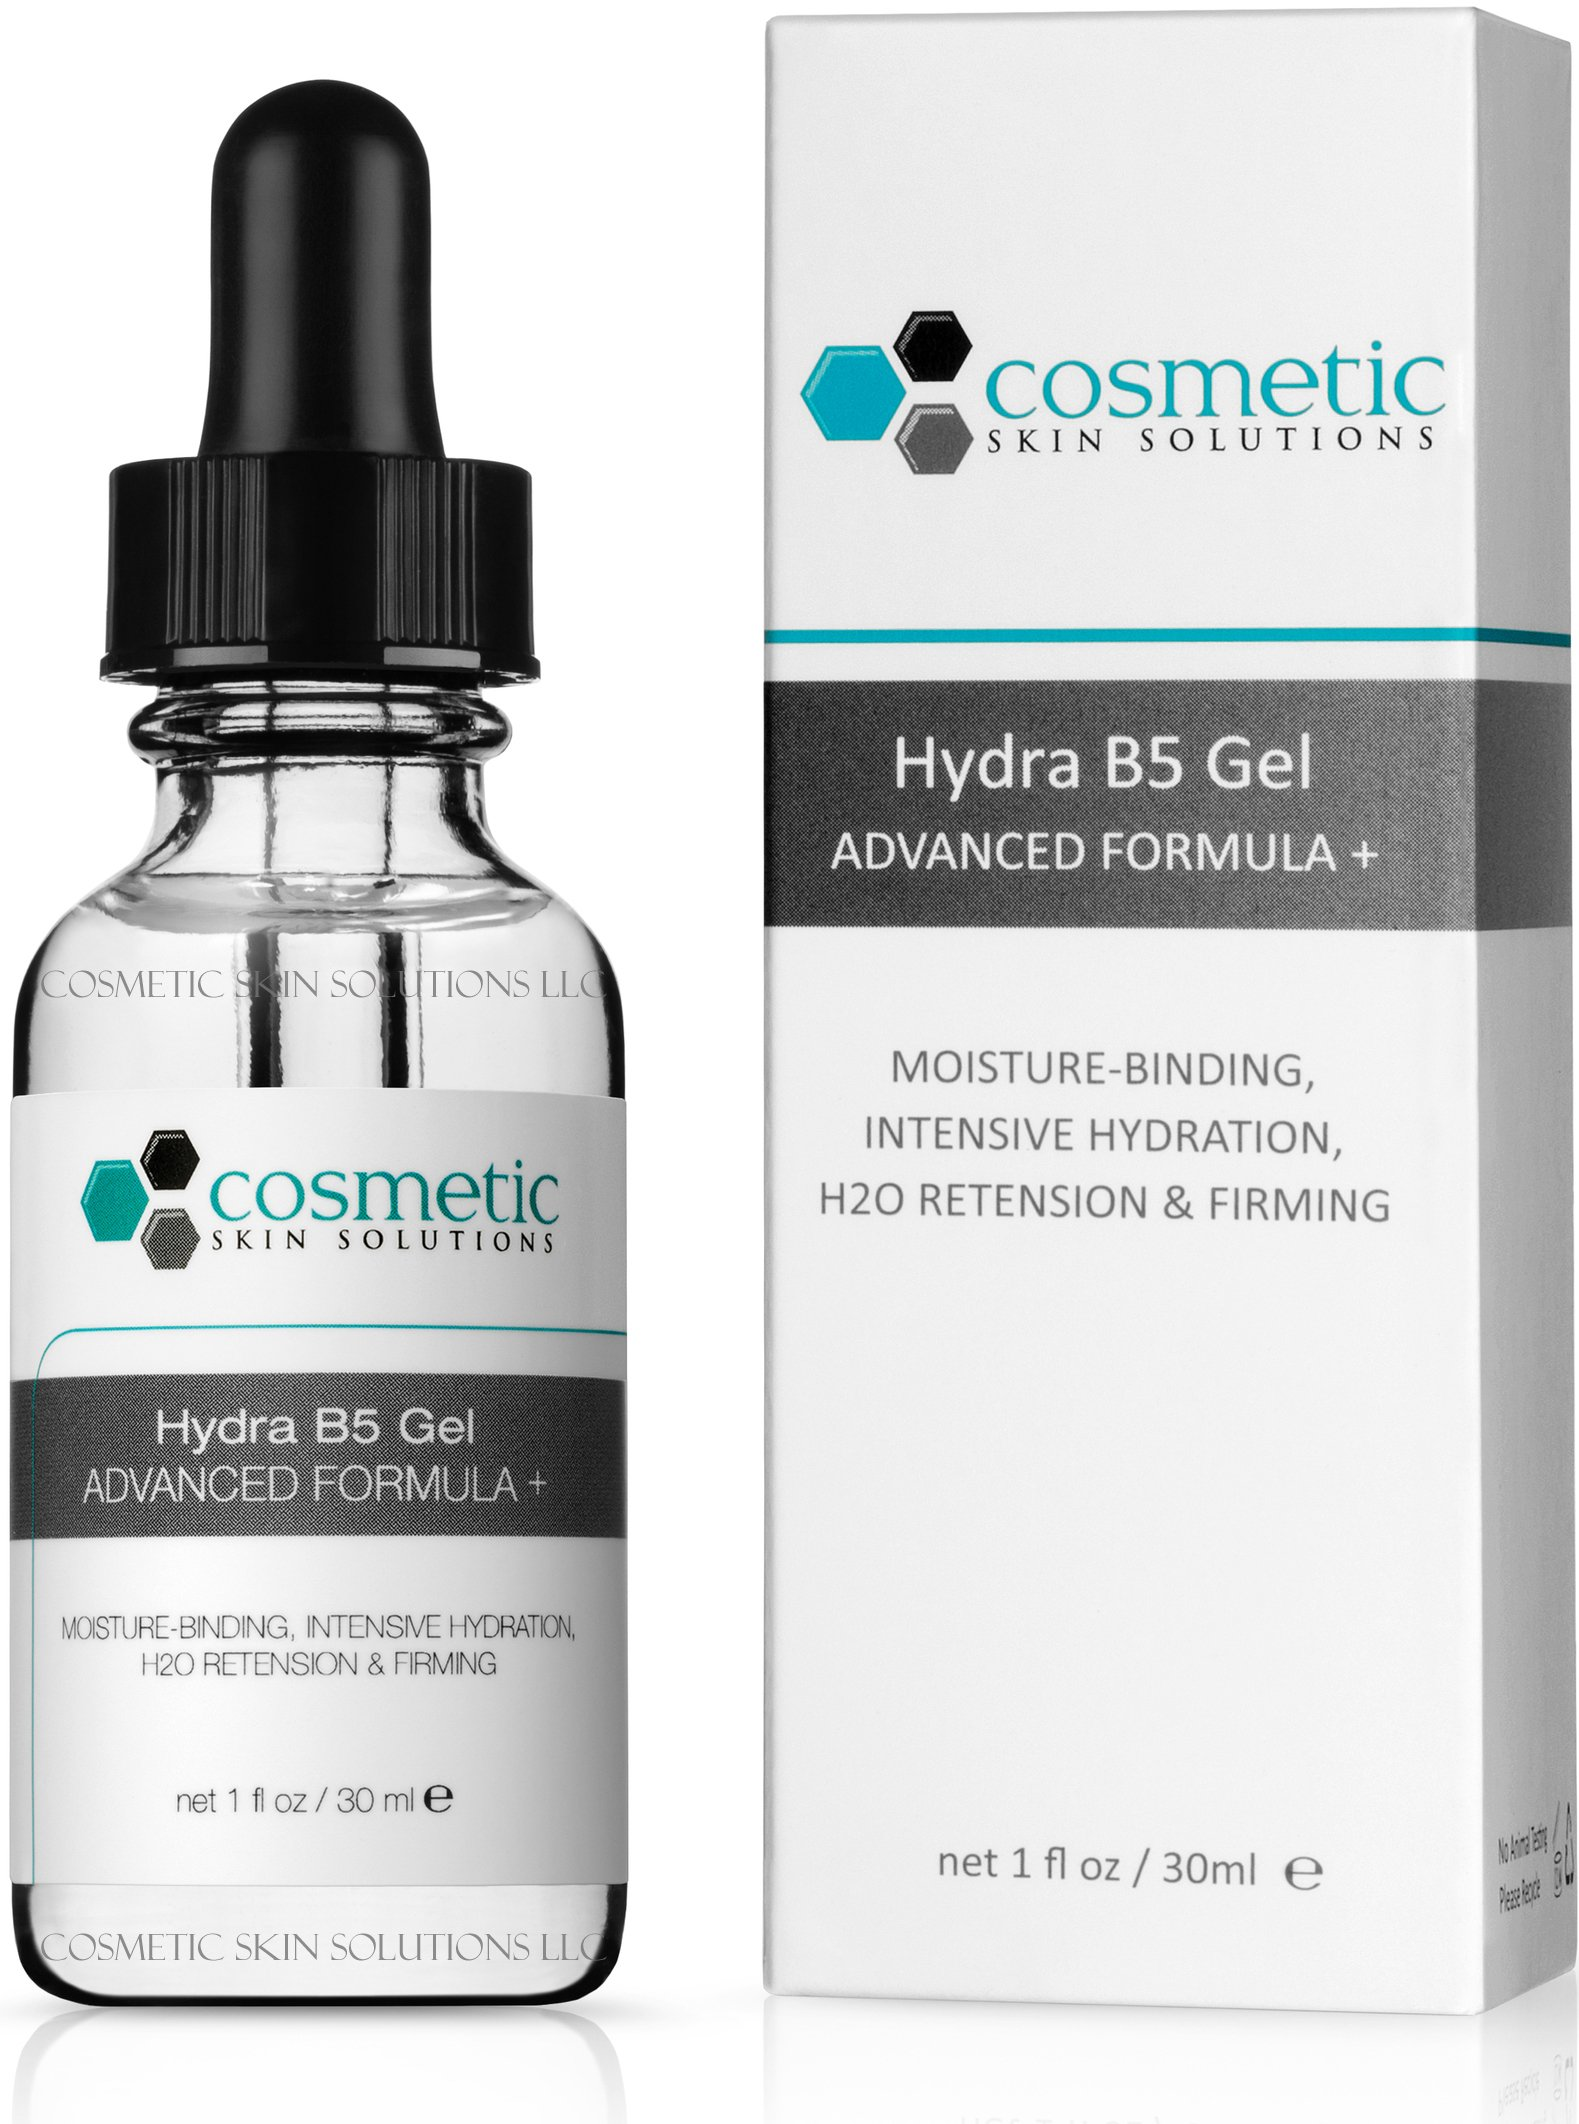 Best Hydra B5 Gel Advanced Formula + 1 fl oz / 30 ml - This Moisture-enhancing Gel Enriched with High Amounts of Vitamin B5 and Hyaluronic Acid. Intensive Hydration, H20 Retension & Firming.